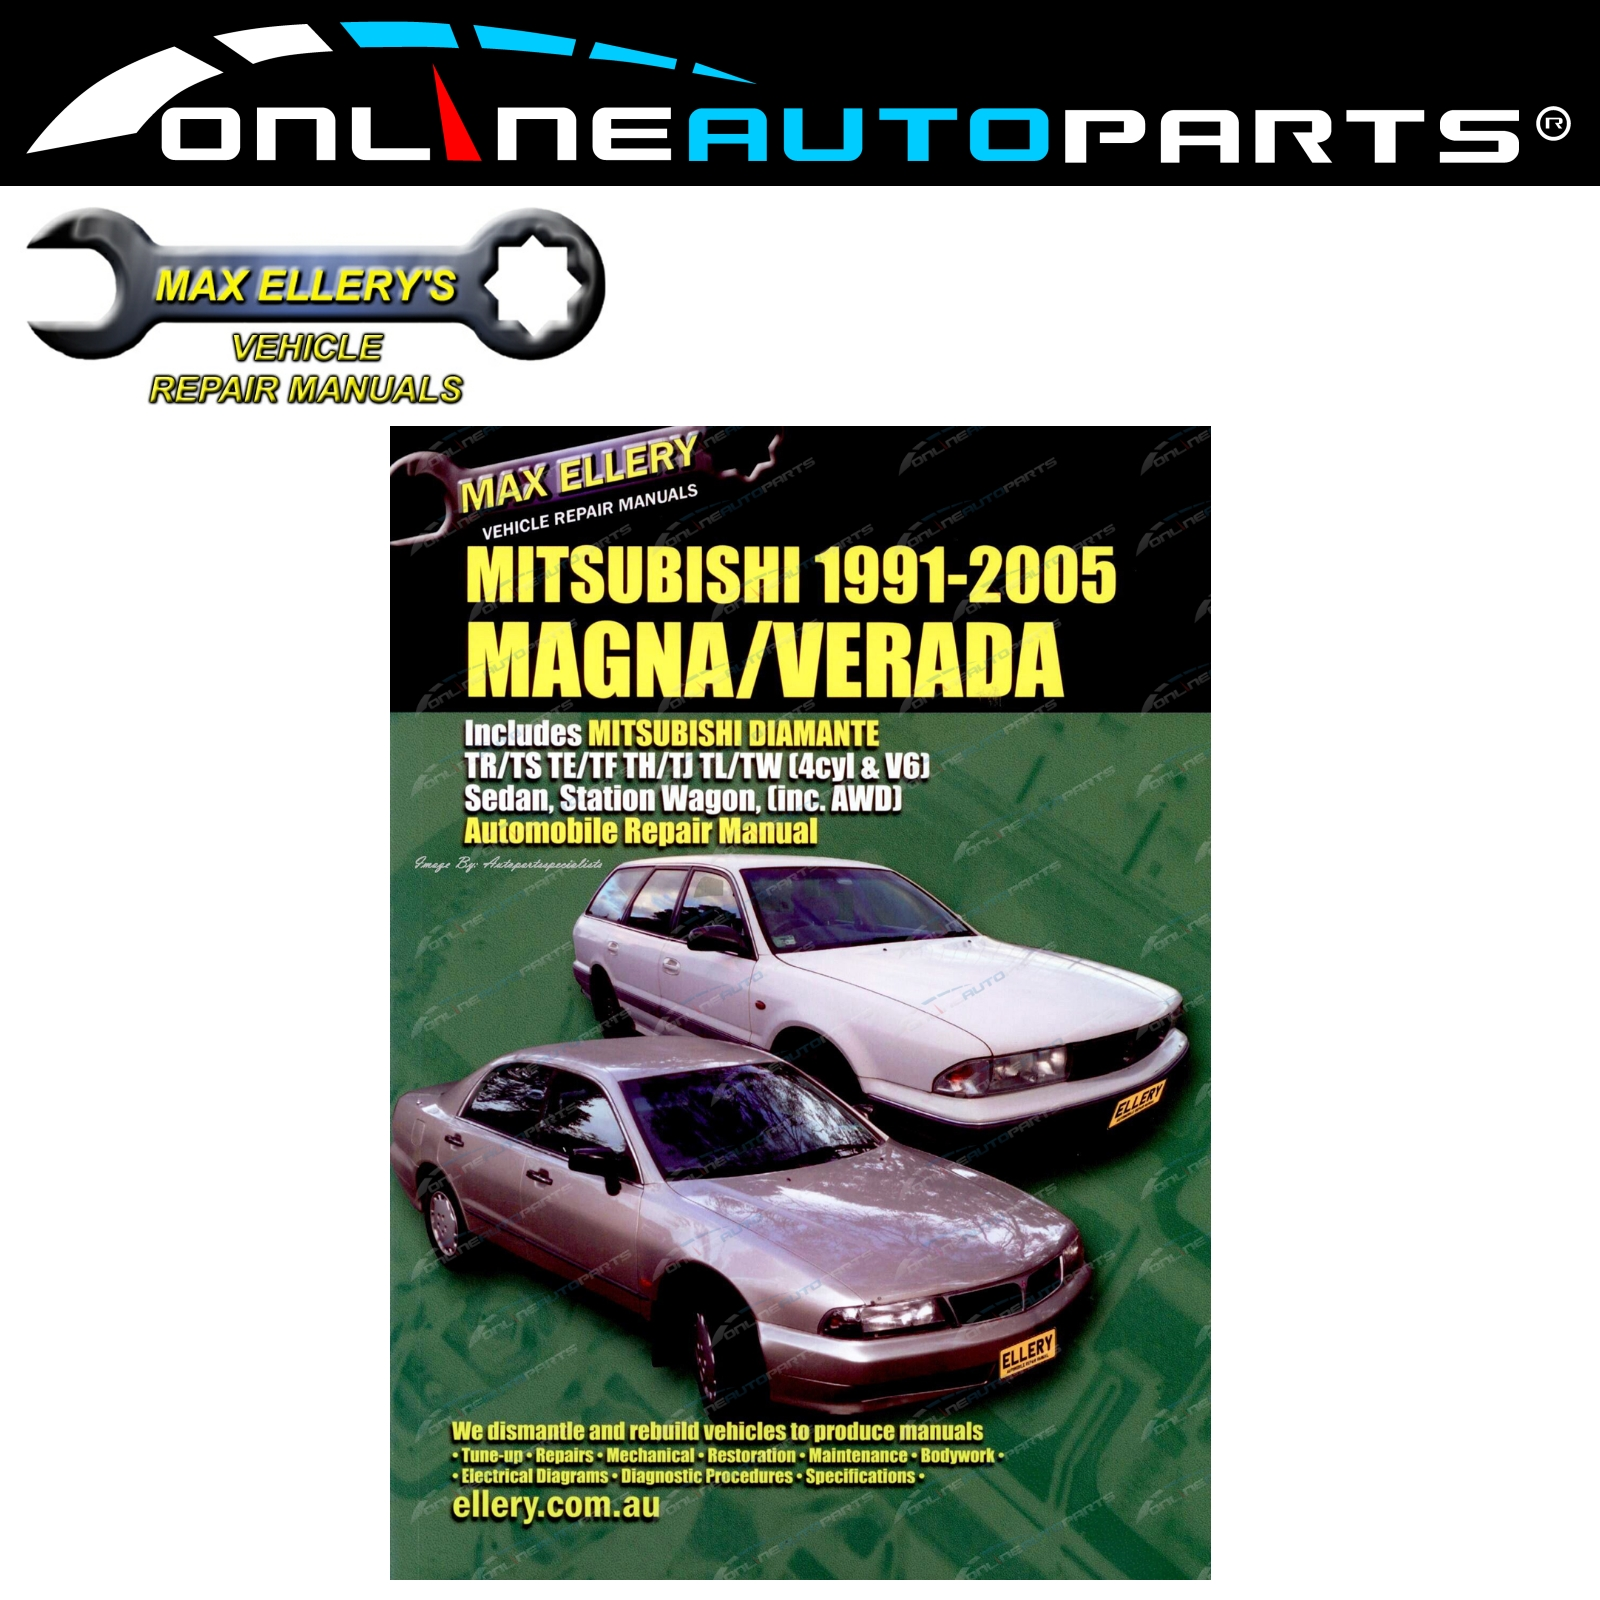 Workshop Repair Manual Mitsubishi Magna Verada 1991-05 TR TS TE TF TH TJ TL